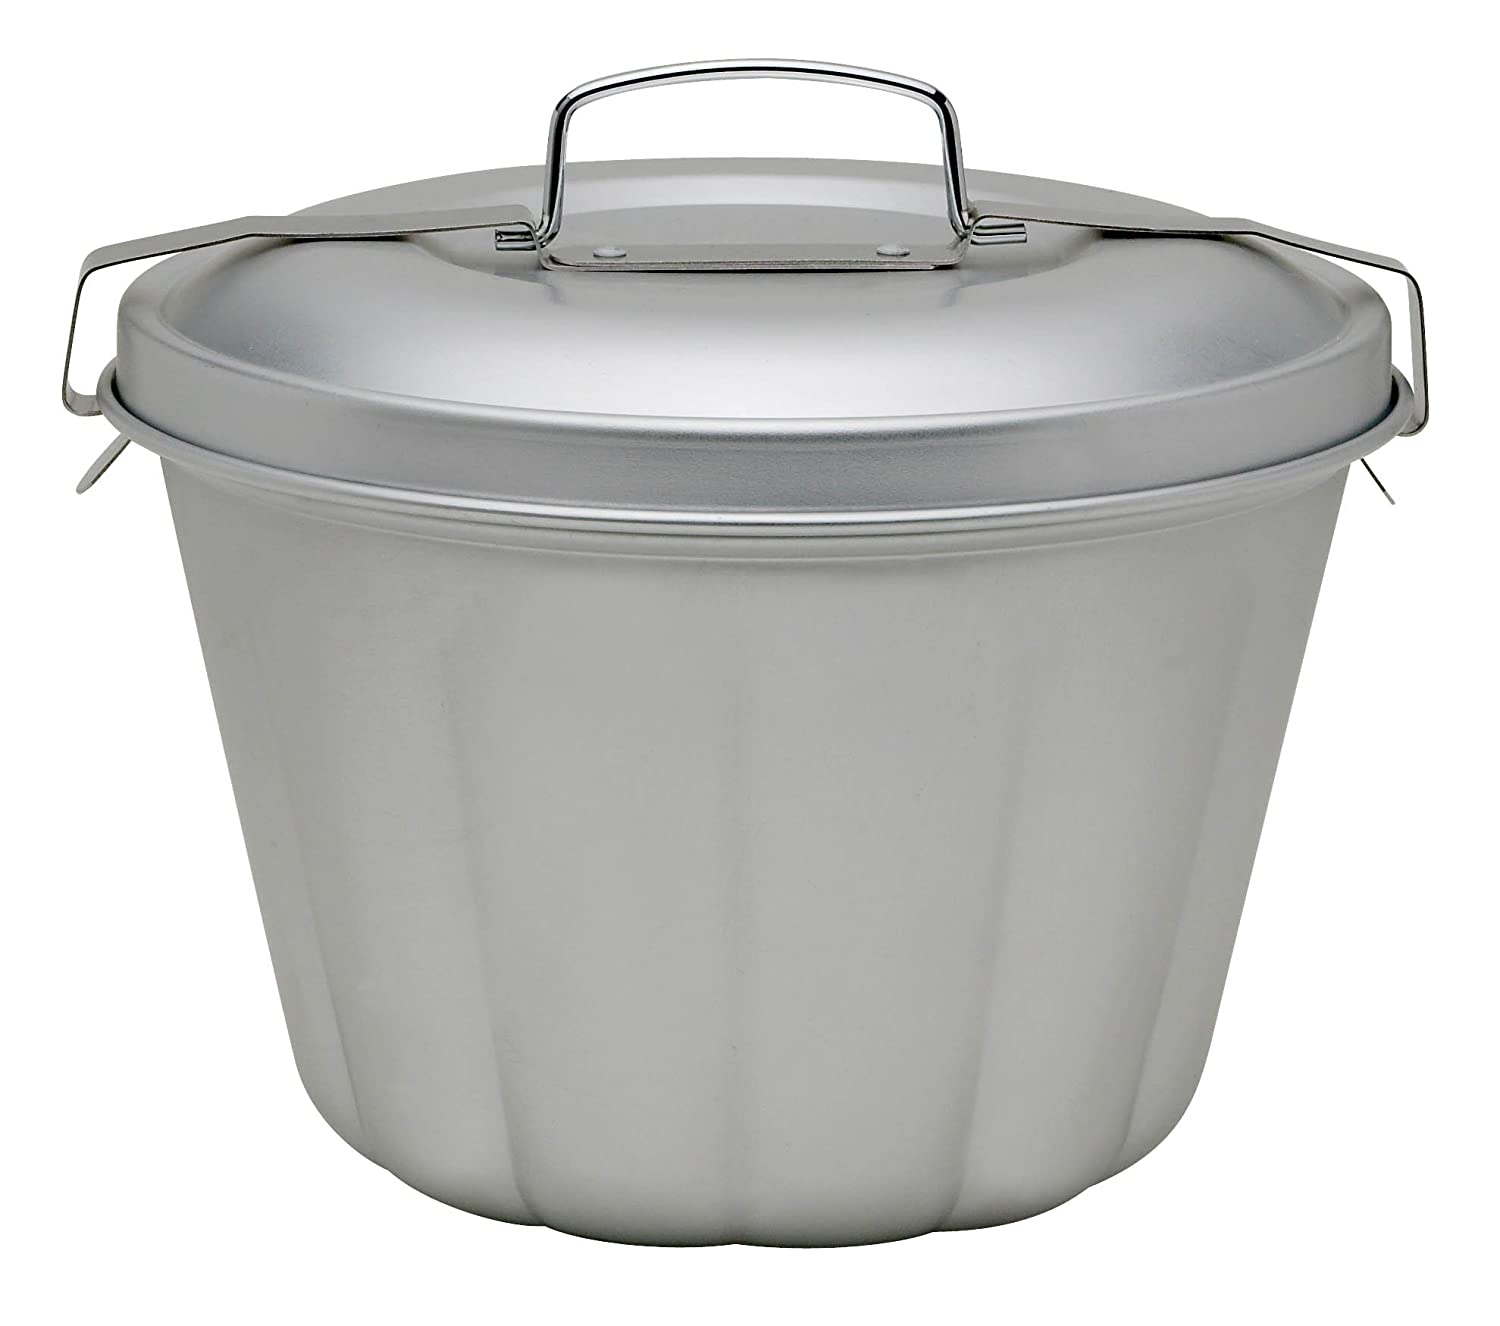 Mrs. Anderson's Baking43715 Non-Stick Steamed Pudding Mold with Lid, 1.6-Liters